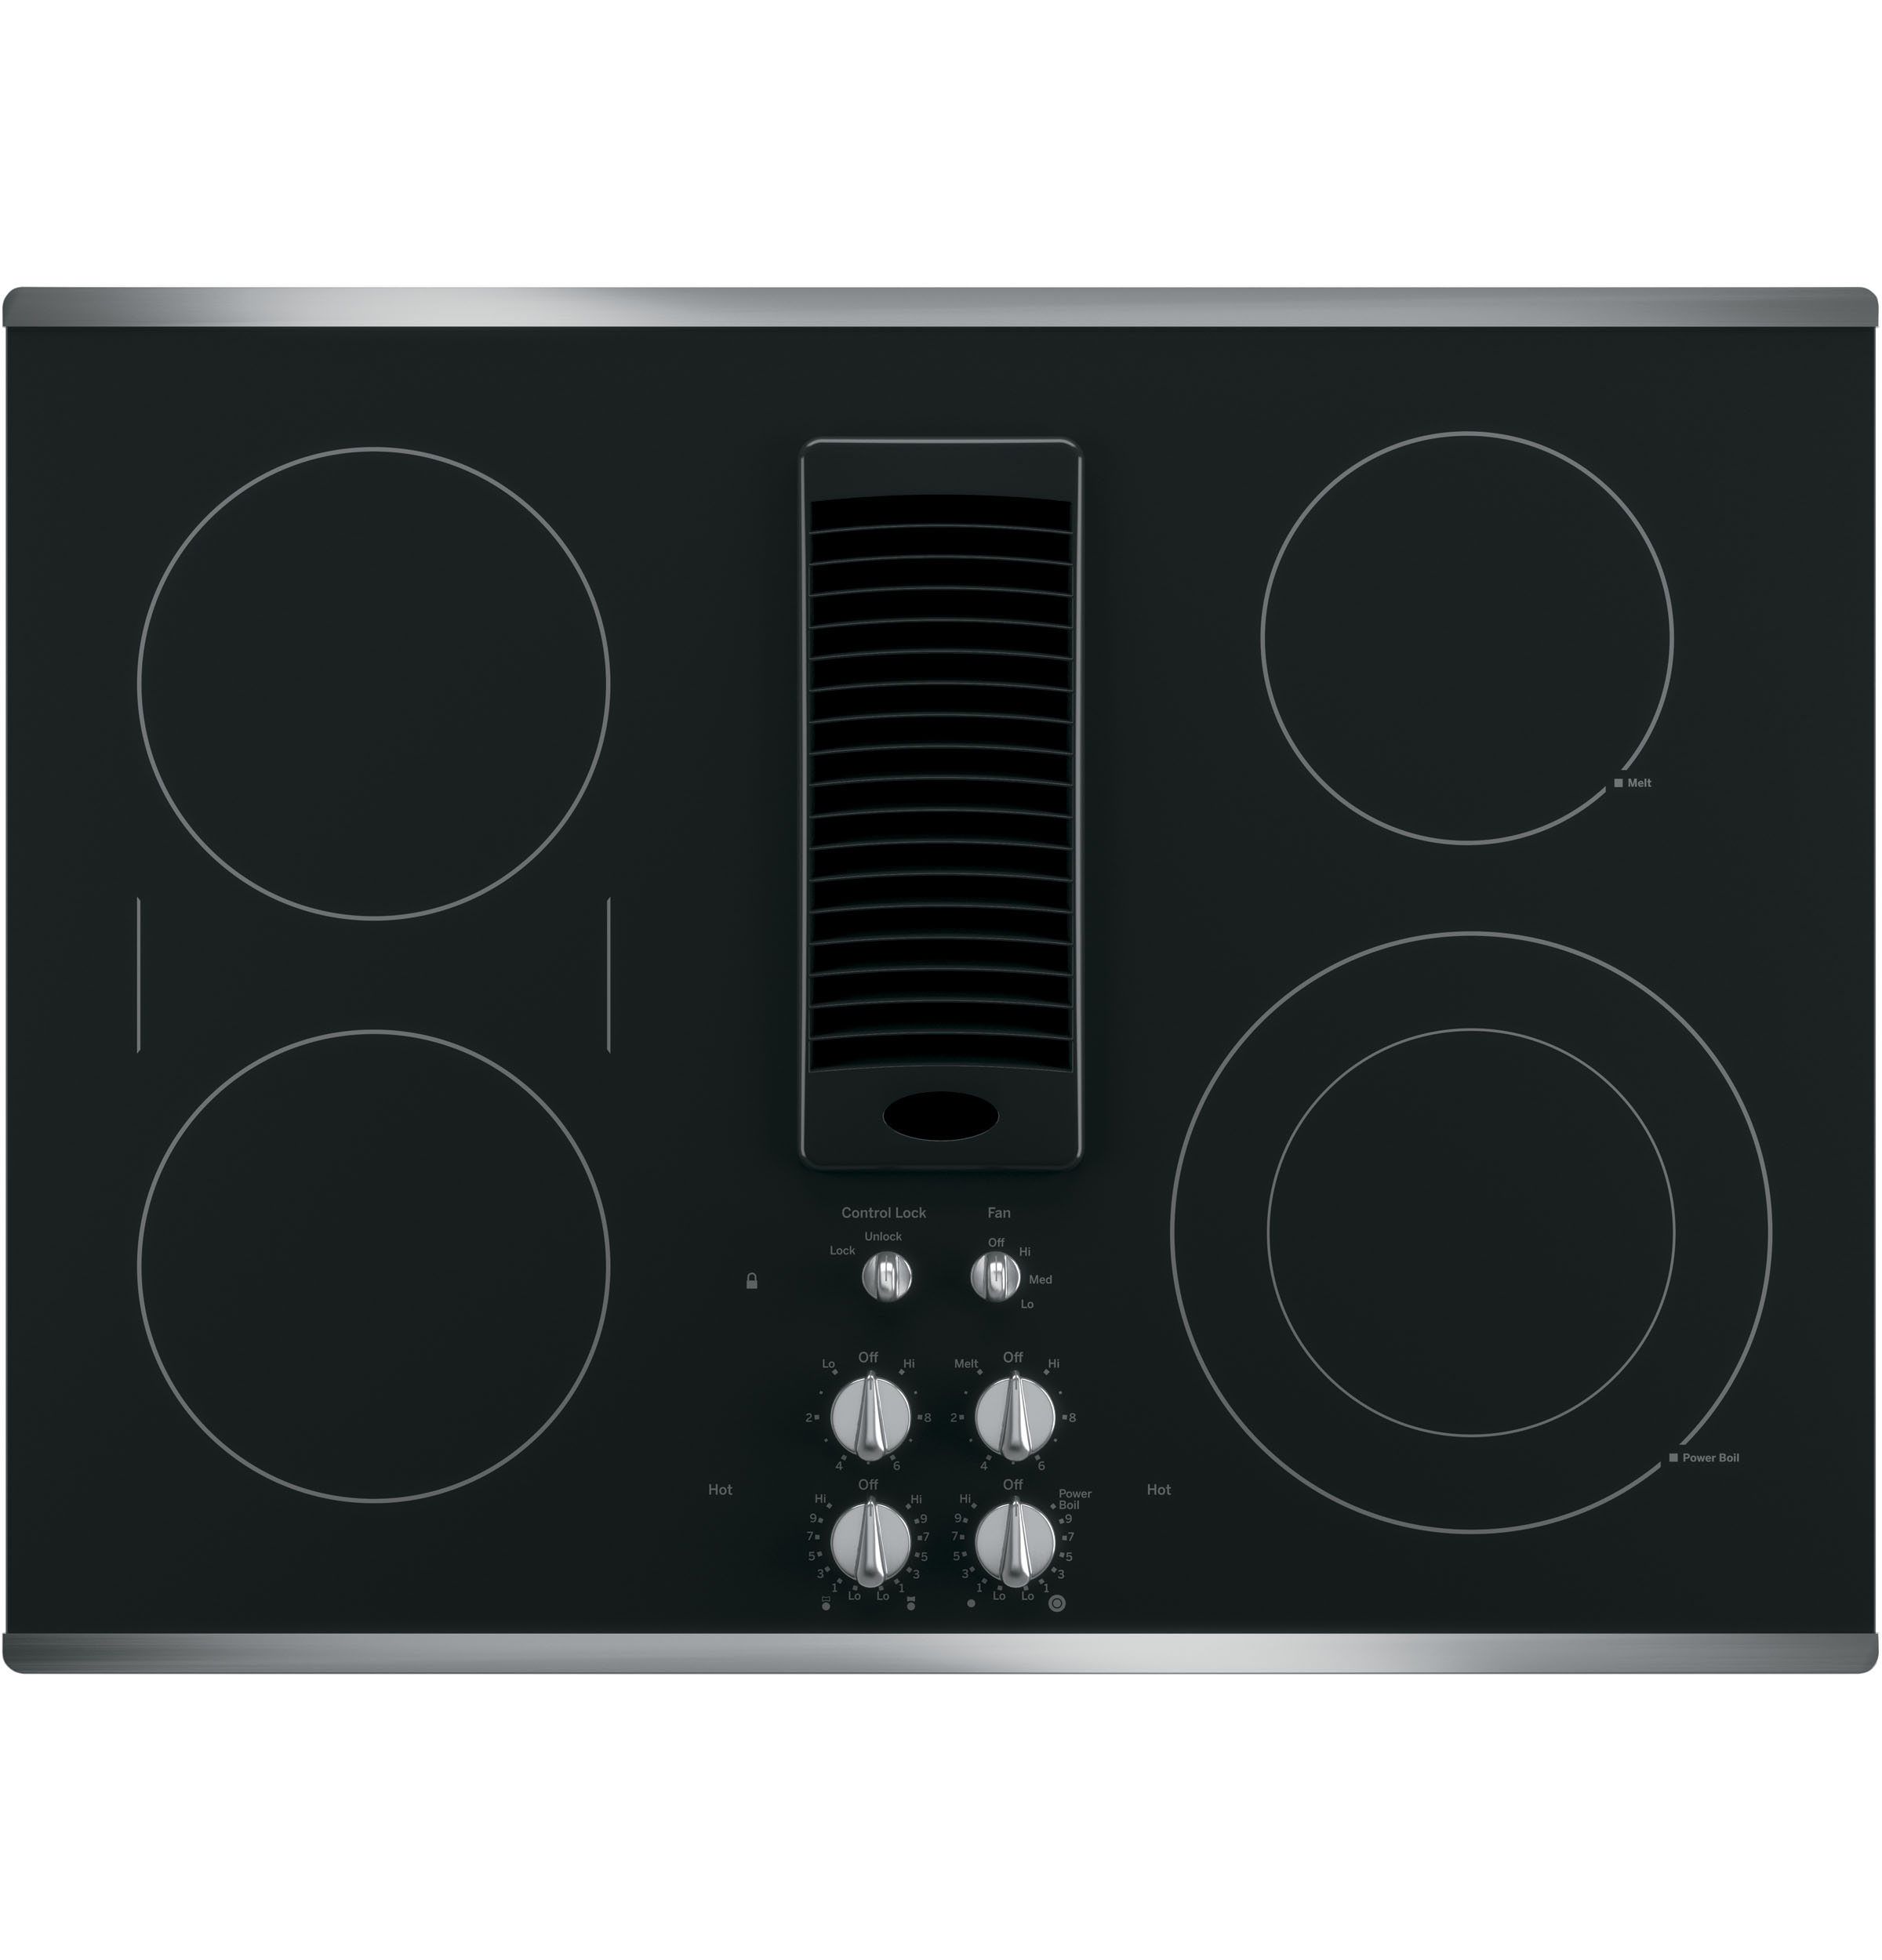 "Model: PP9830SJSS | Cafe GE Profile™ 30"" Downdraft Electric Cooktop"